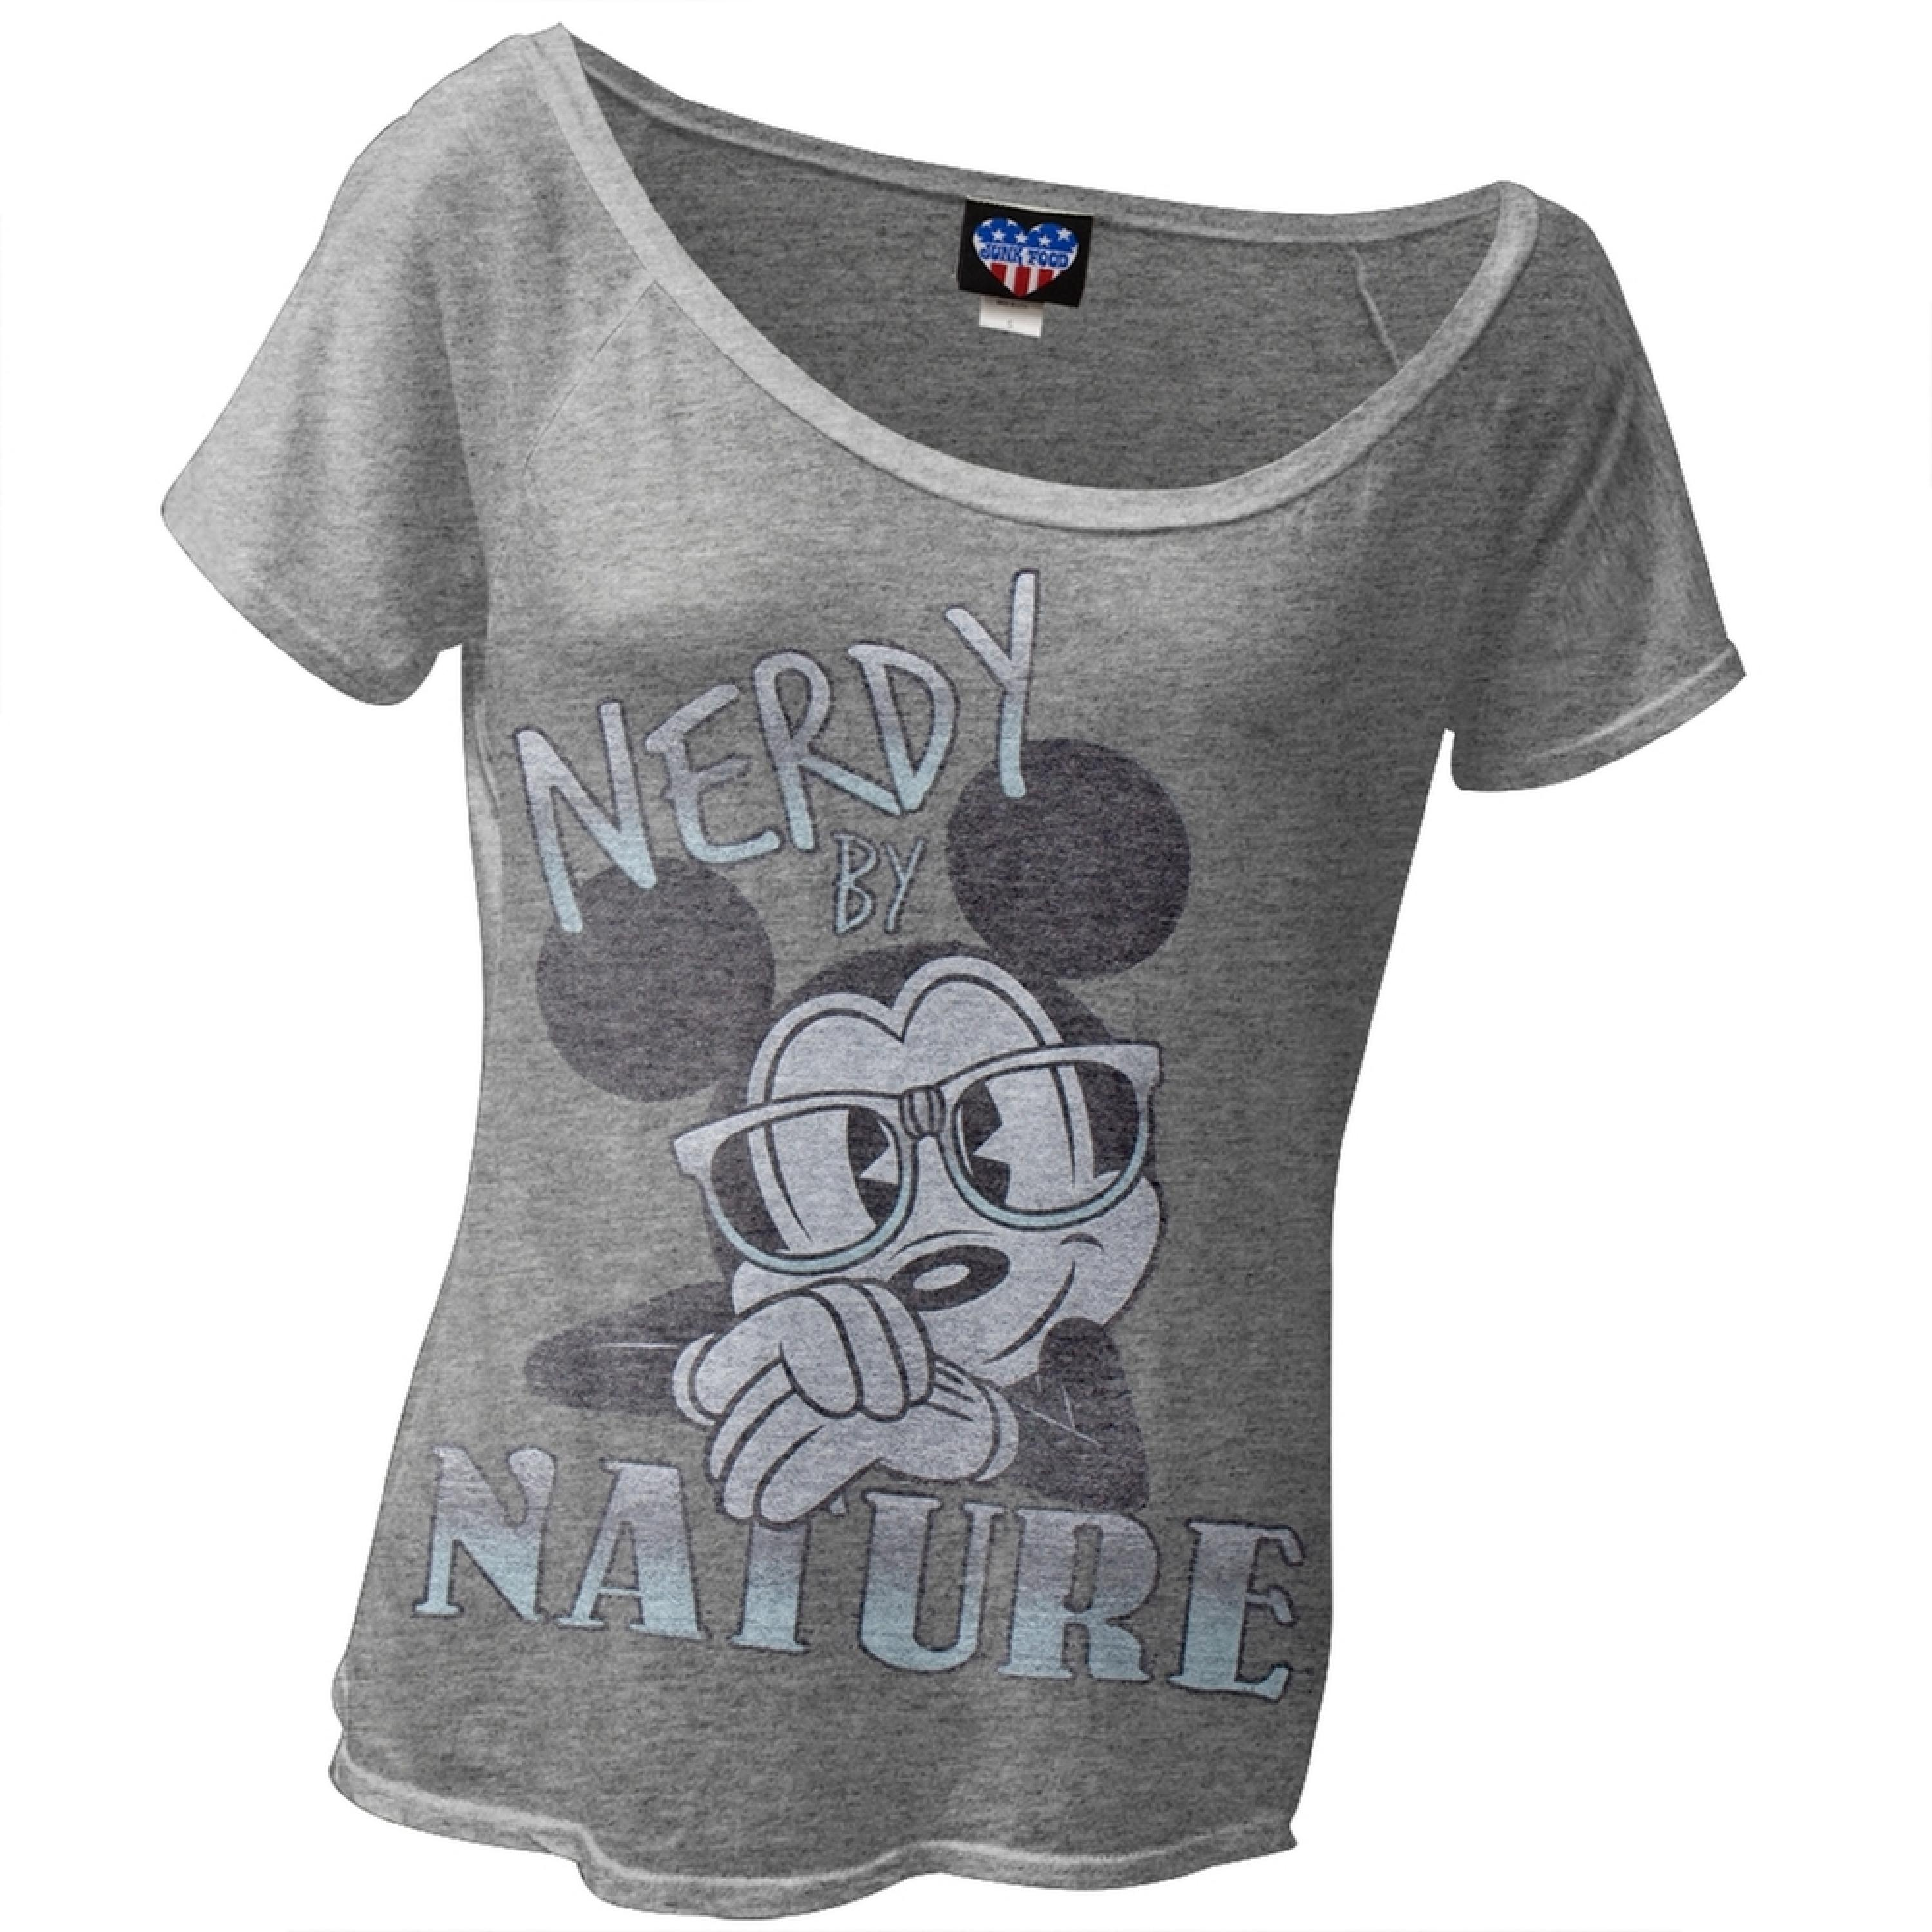 Mickey Mouse - Nerdy By Nature Juniors T-Shirt